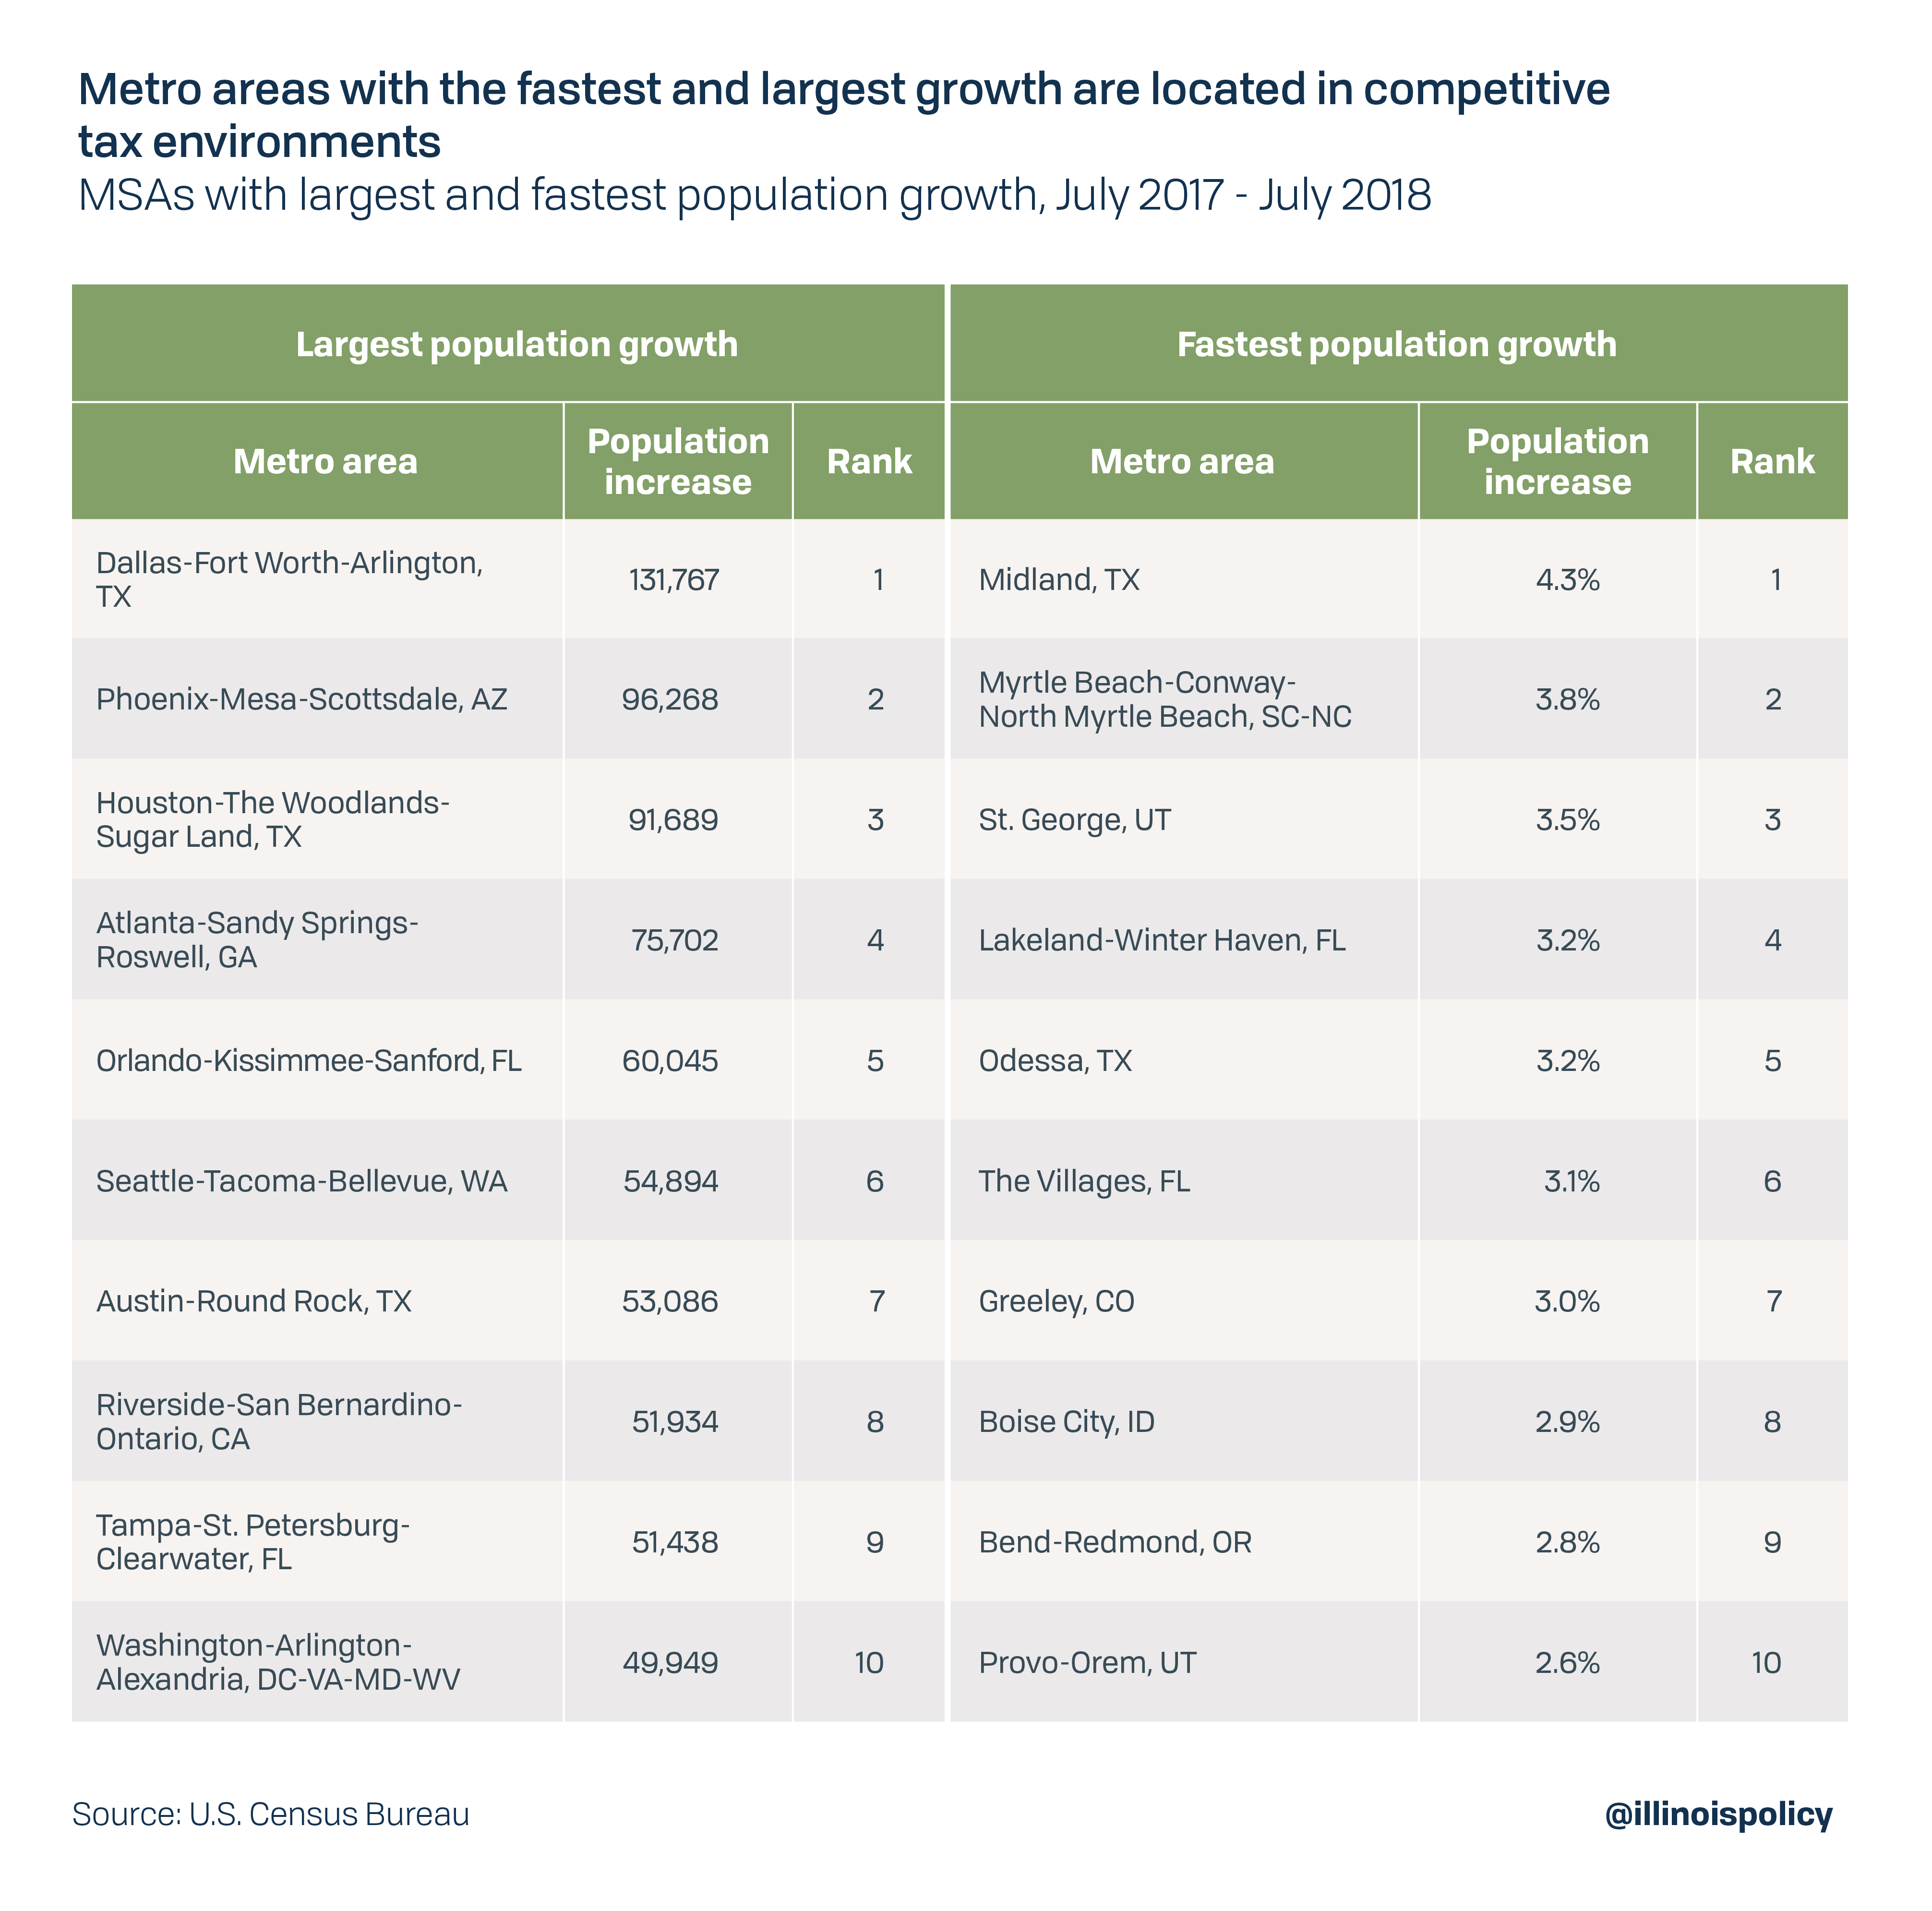 Metro areas with the fastest and largest growth are located in competitive tax environments